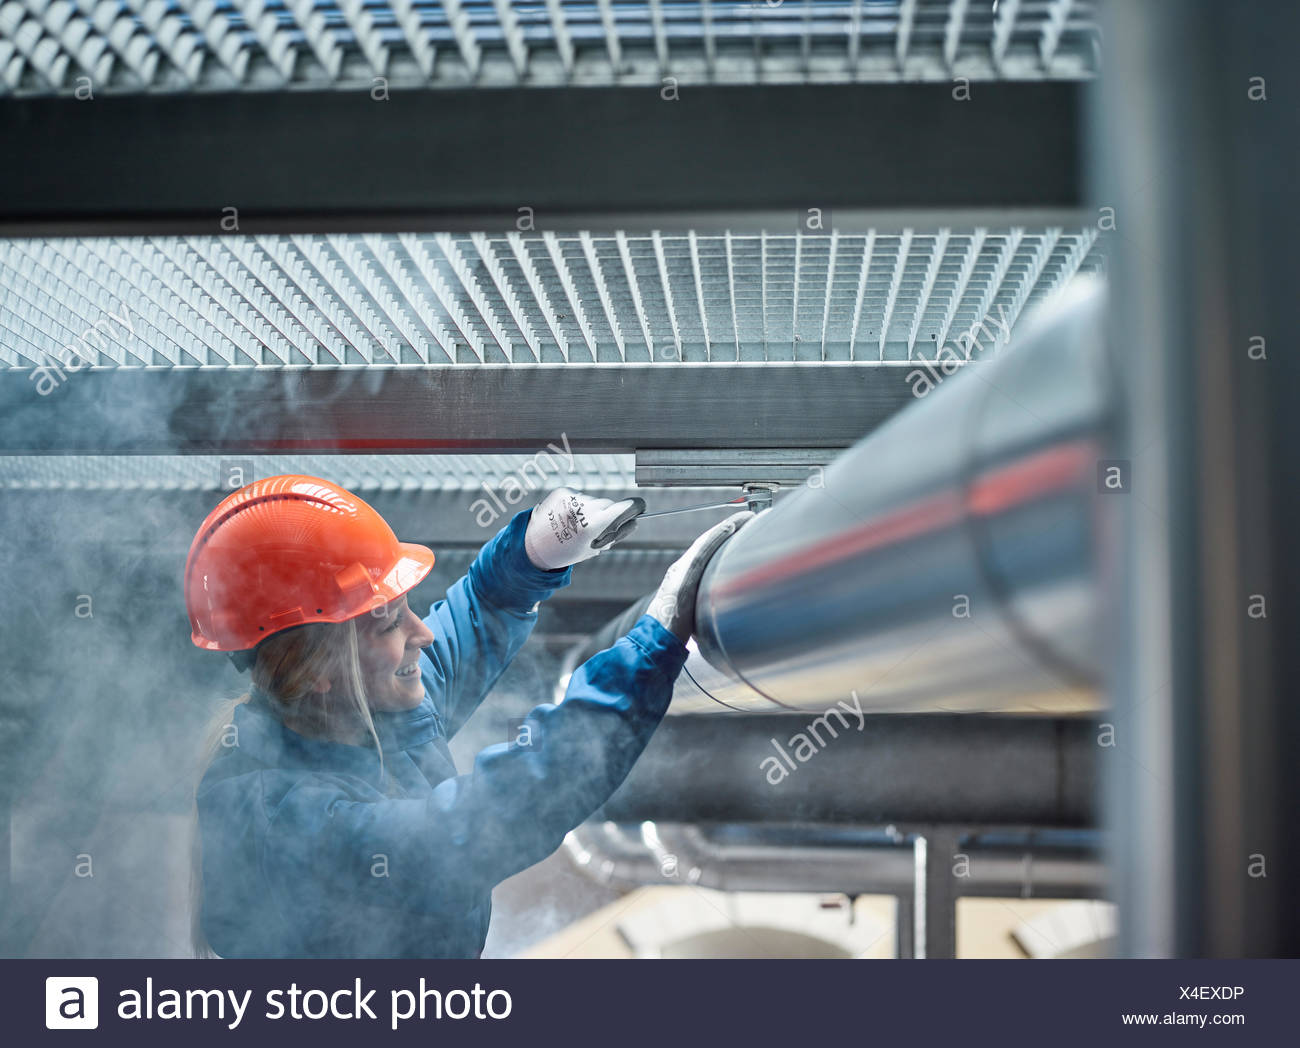 Technician, mechanic with orange helmet mounting a refrigeration line bracket, Austria - Stock Image